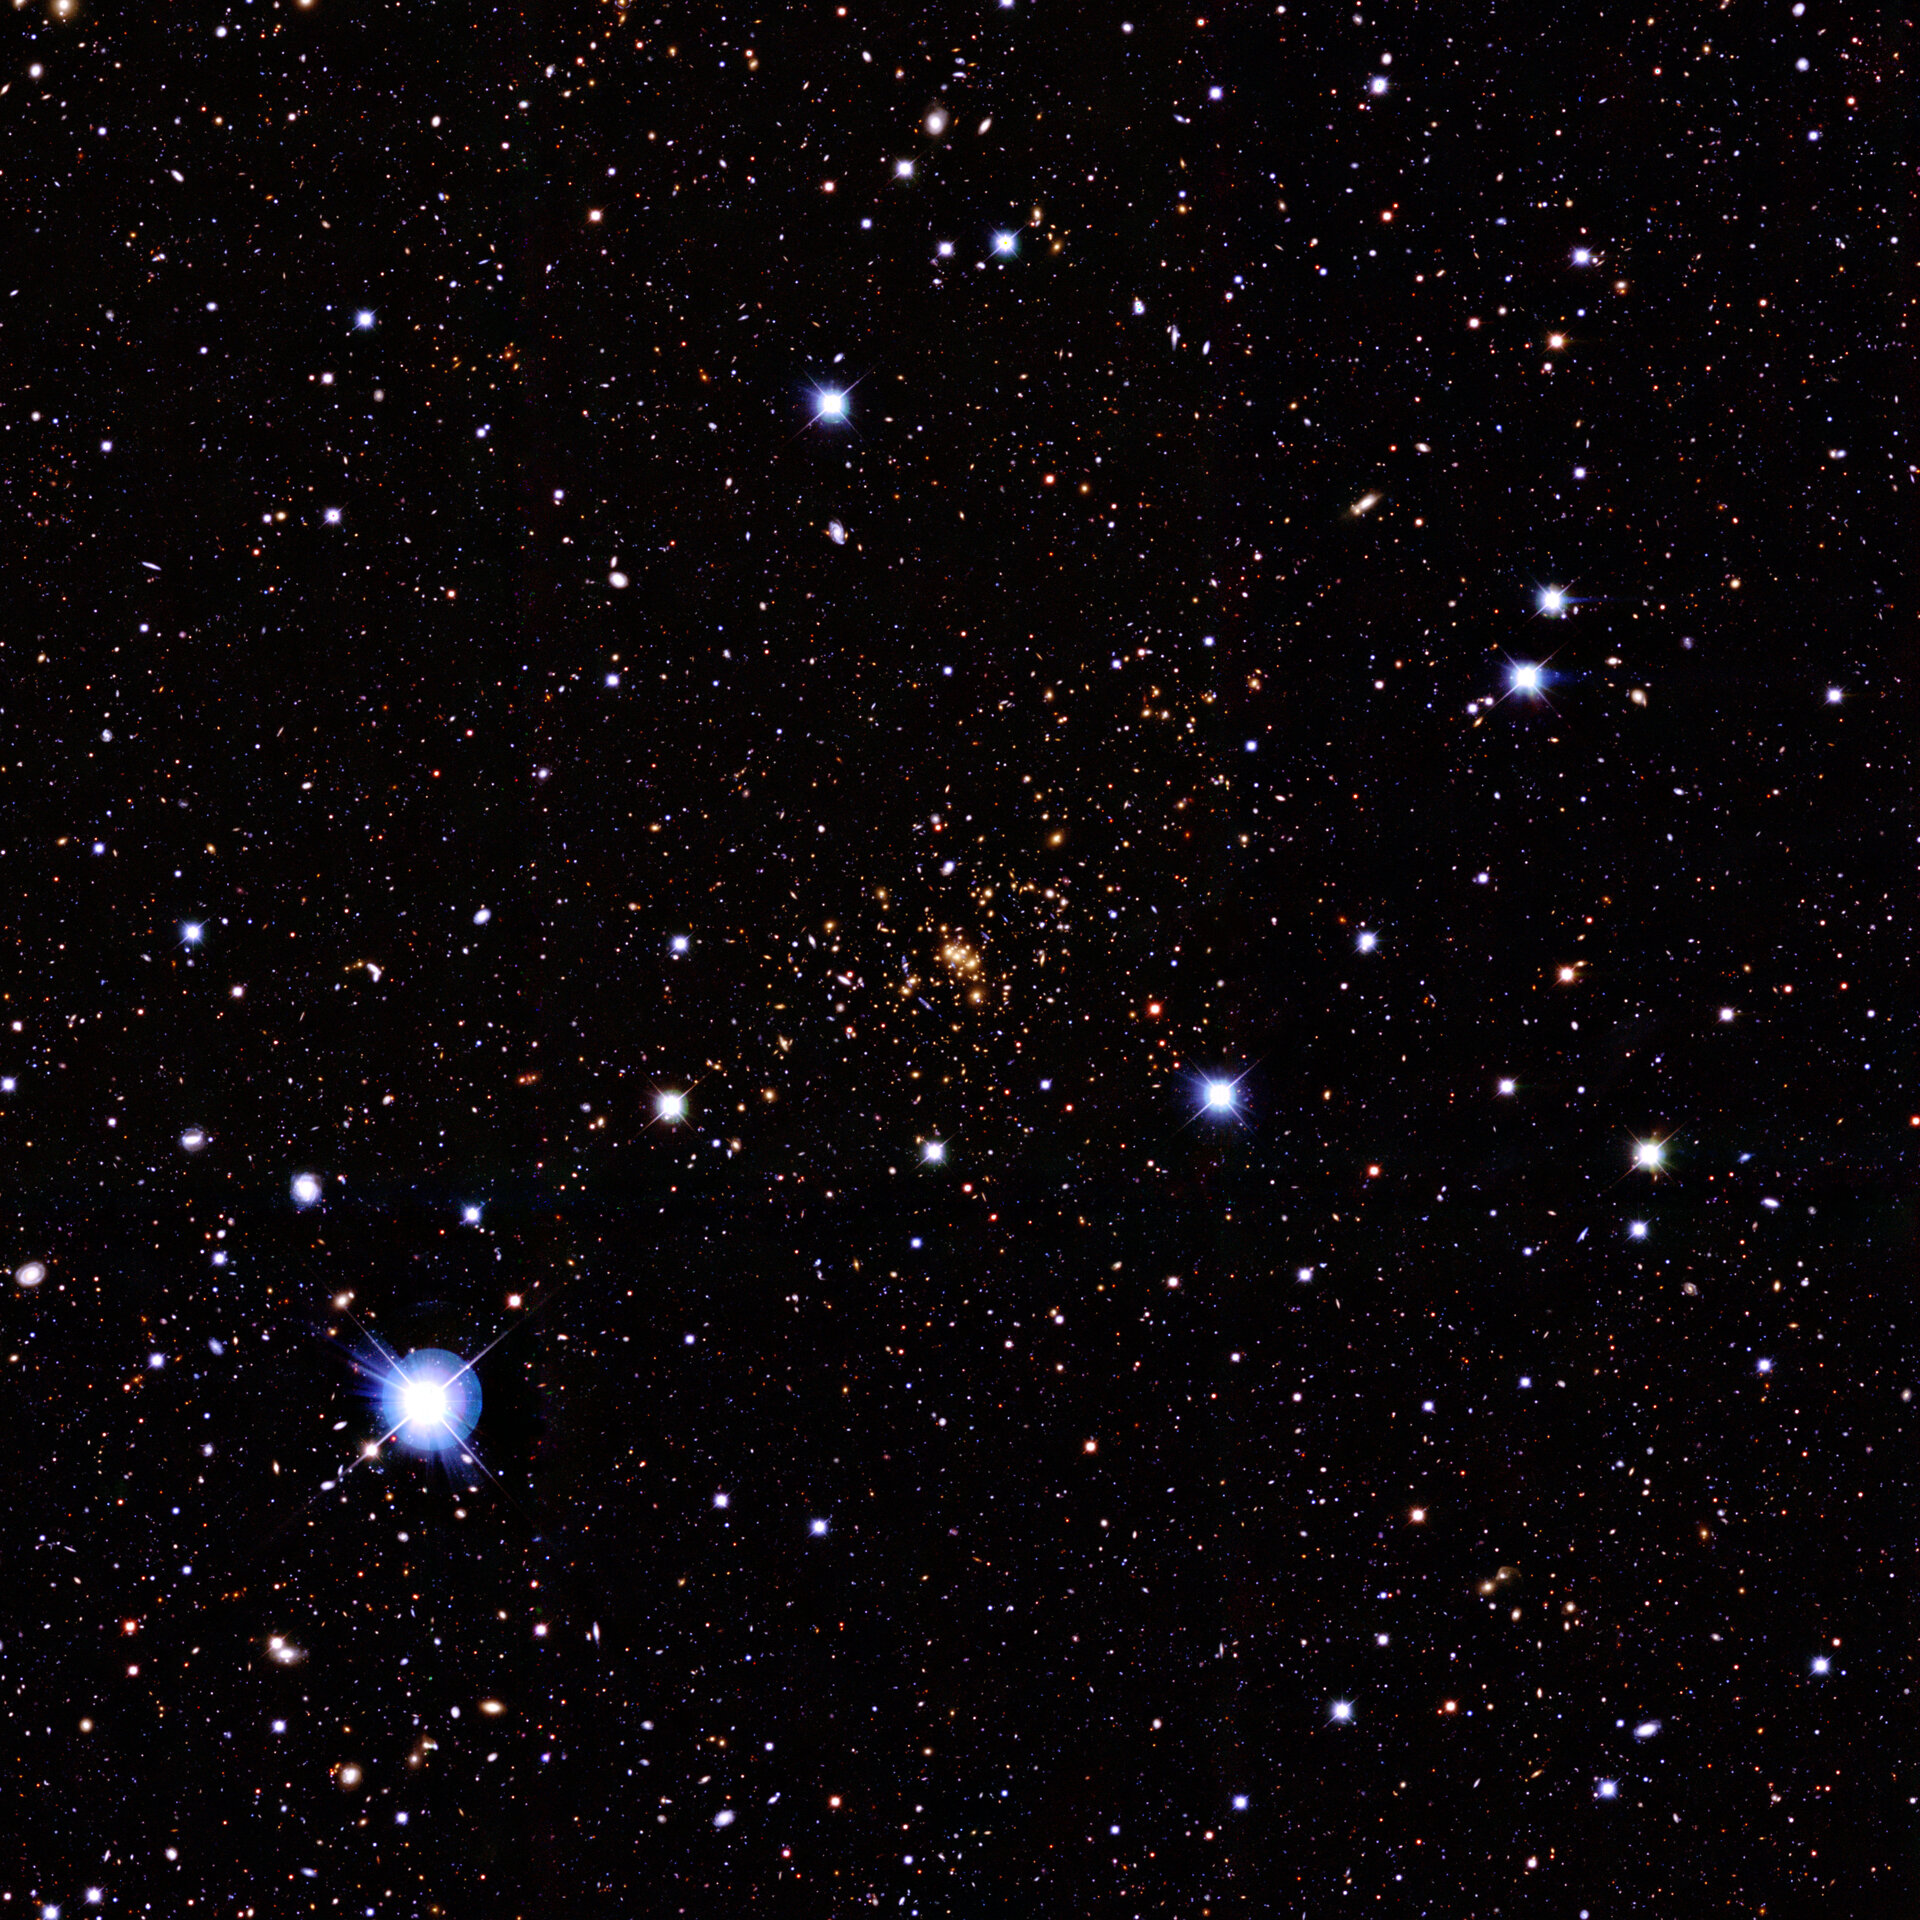 Ground-based image of the galaxy cluster C10024+1654